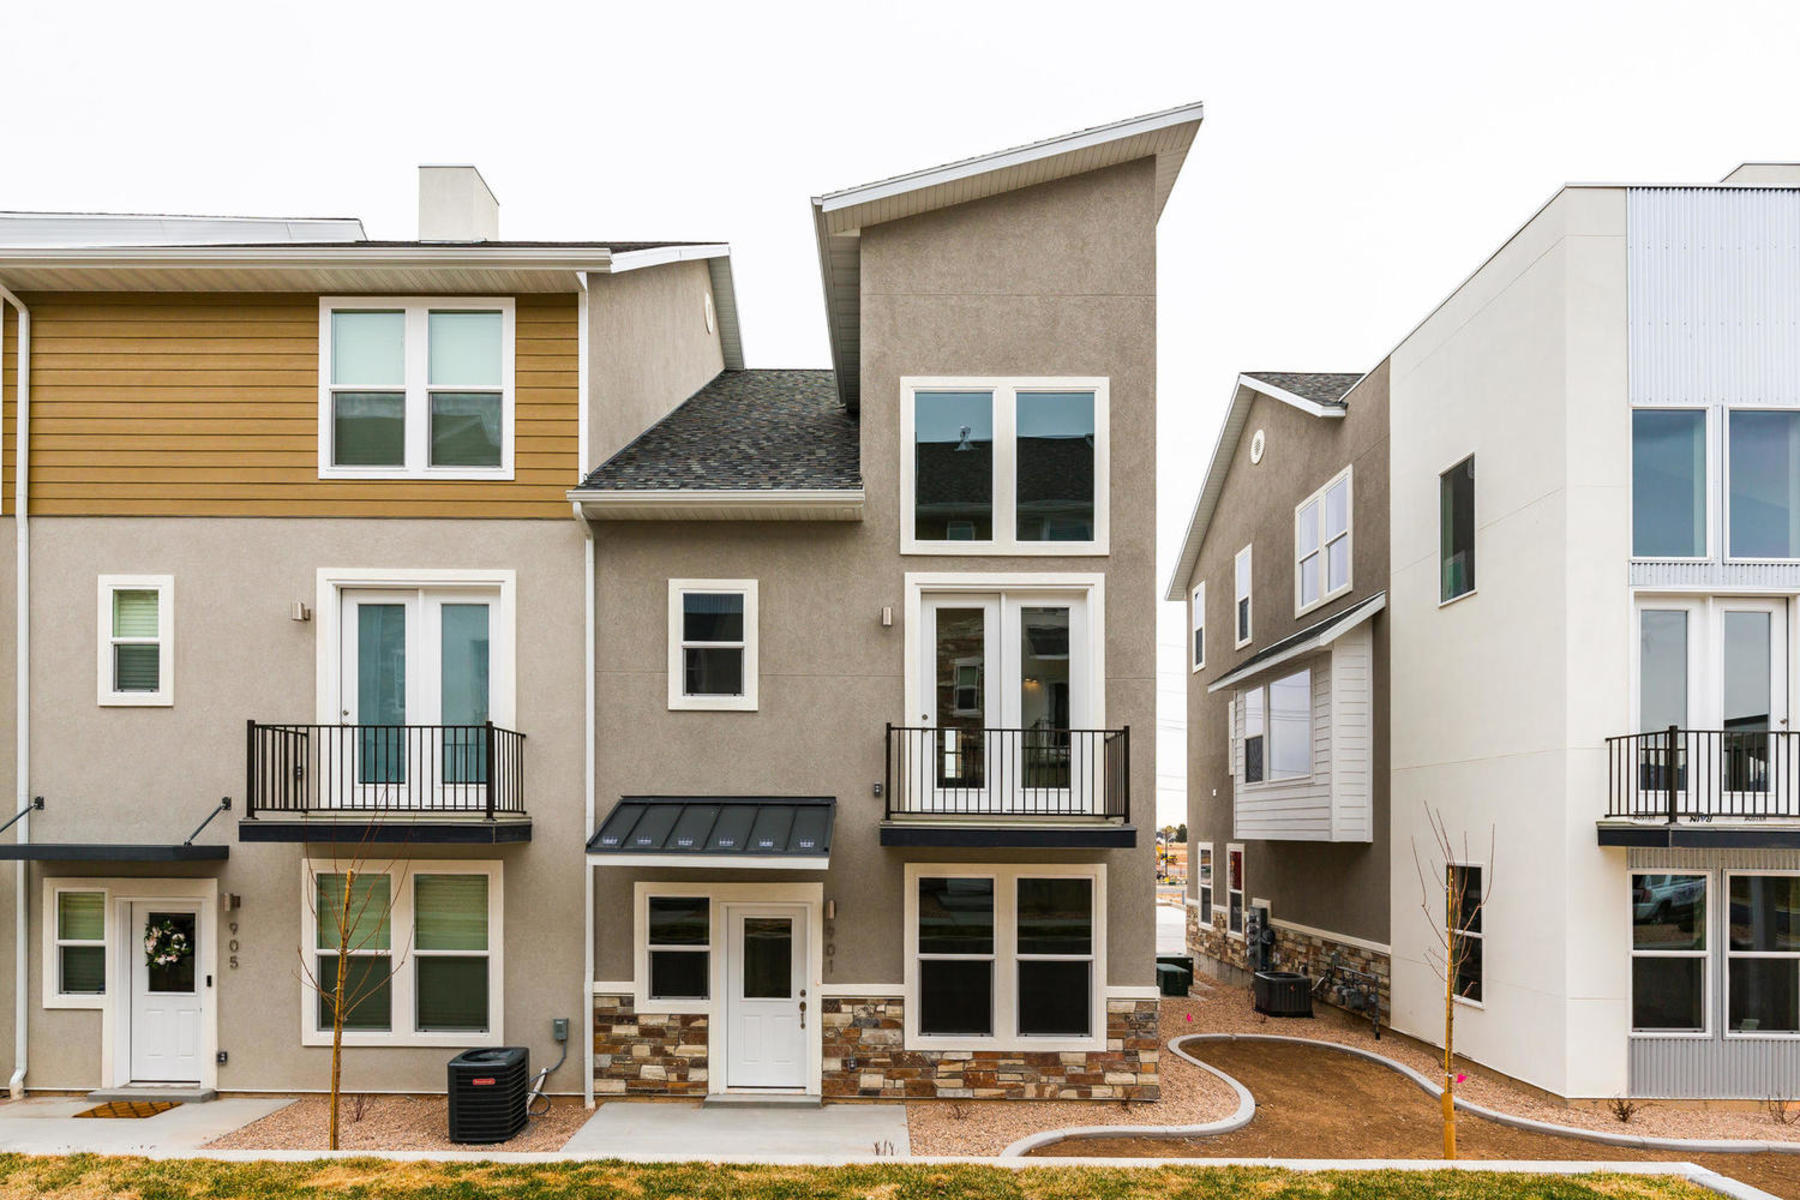 townhouses per Vendita alle ore The Tribeca Unit 28 at The Ridge at Spanish Fork 858 S 2560 E, Spanish Fork, Utah 84660 Stati Uniti